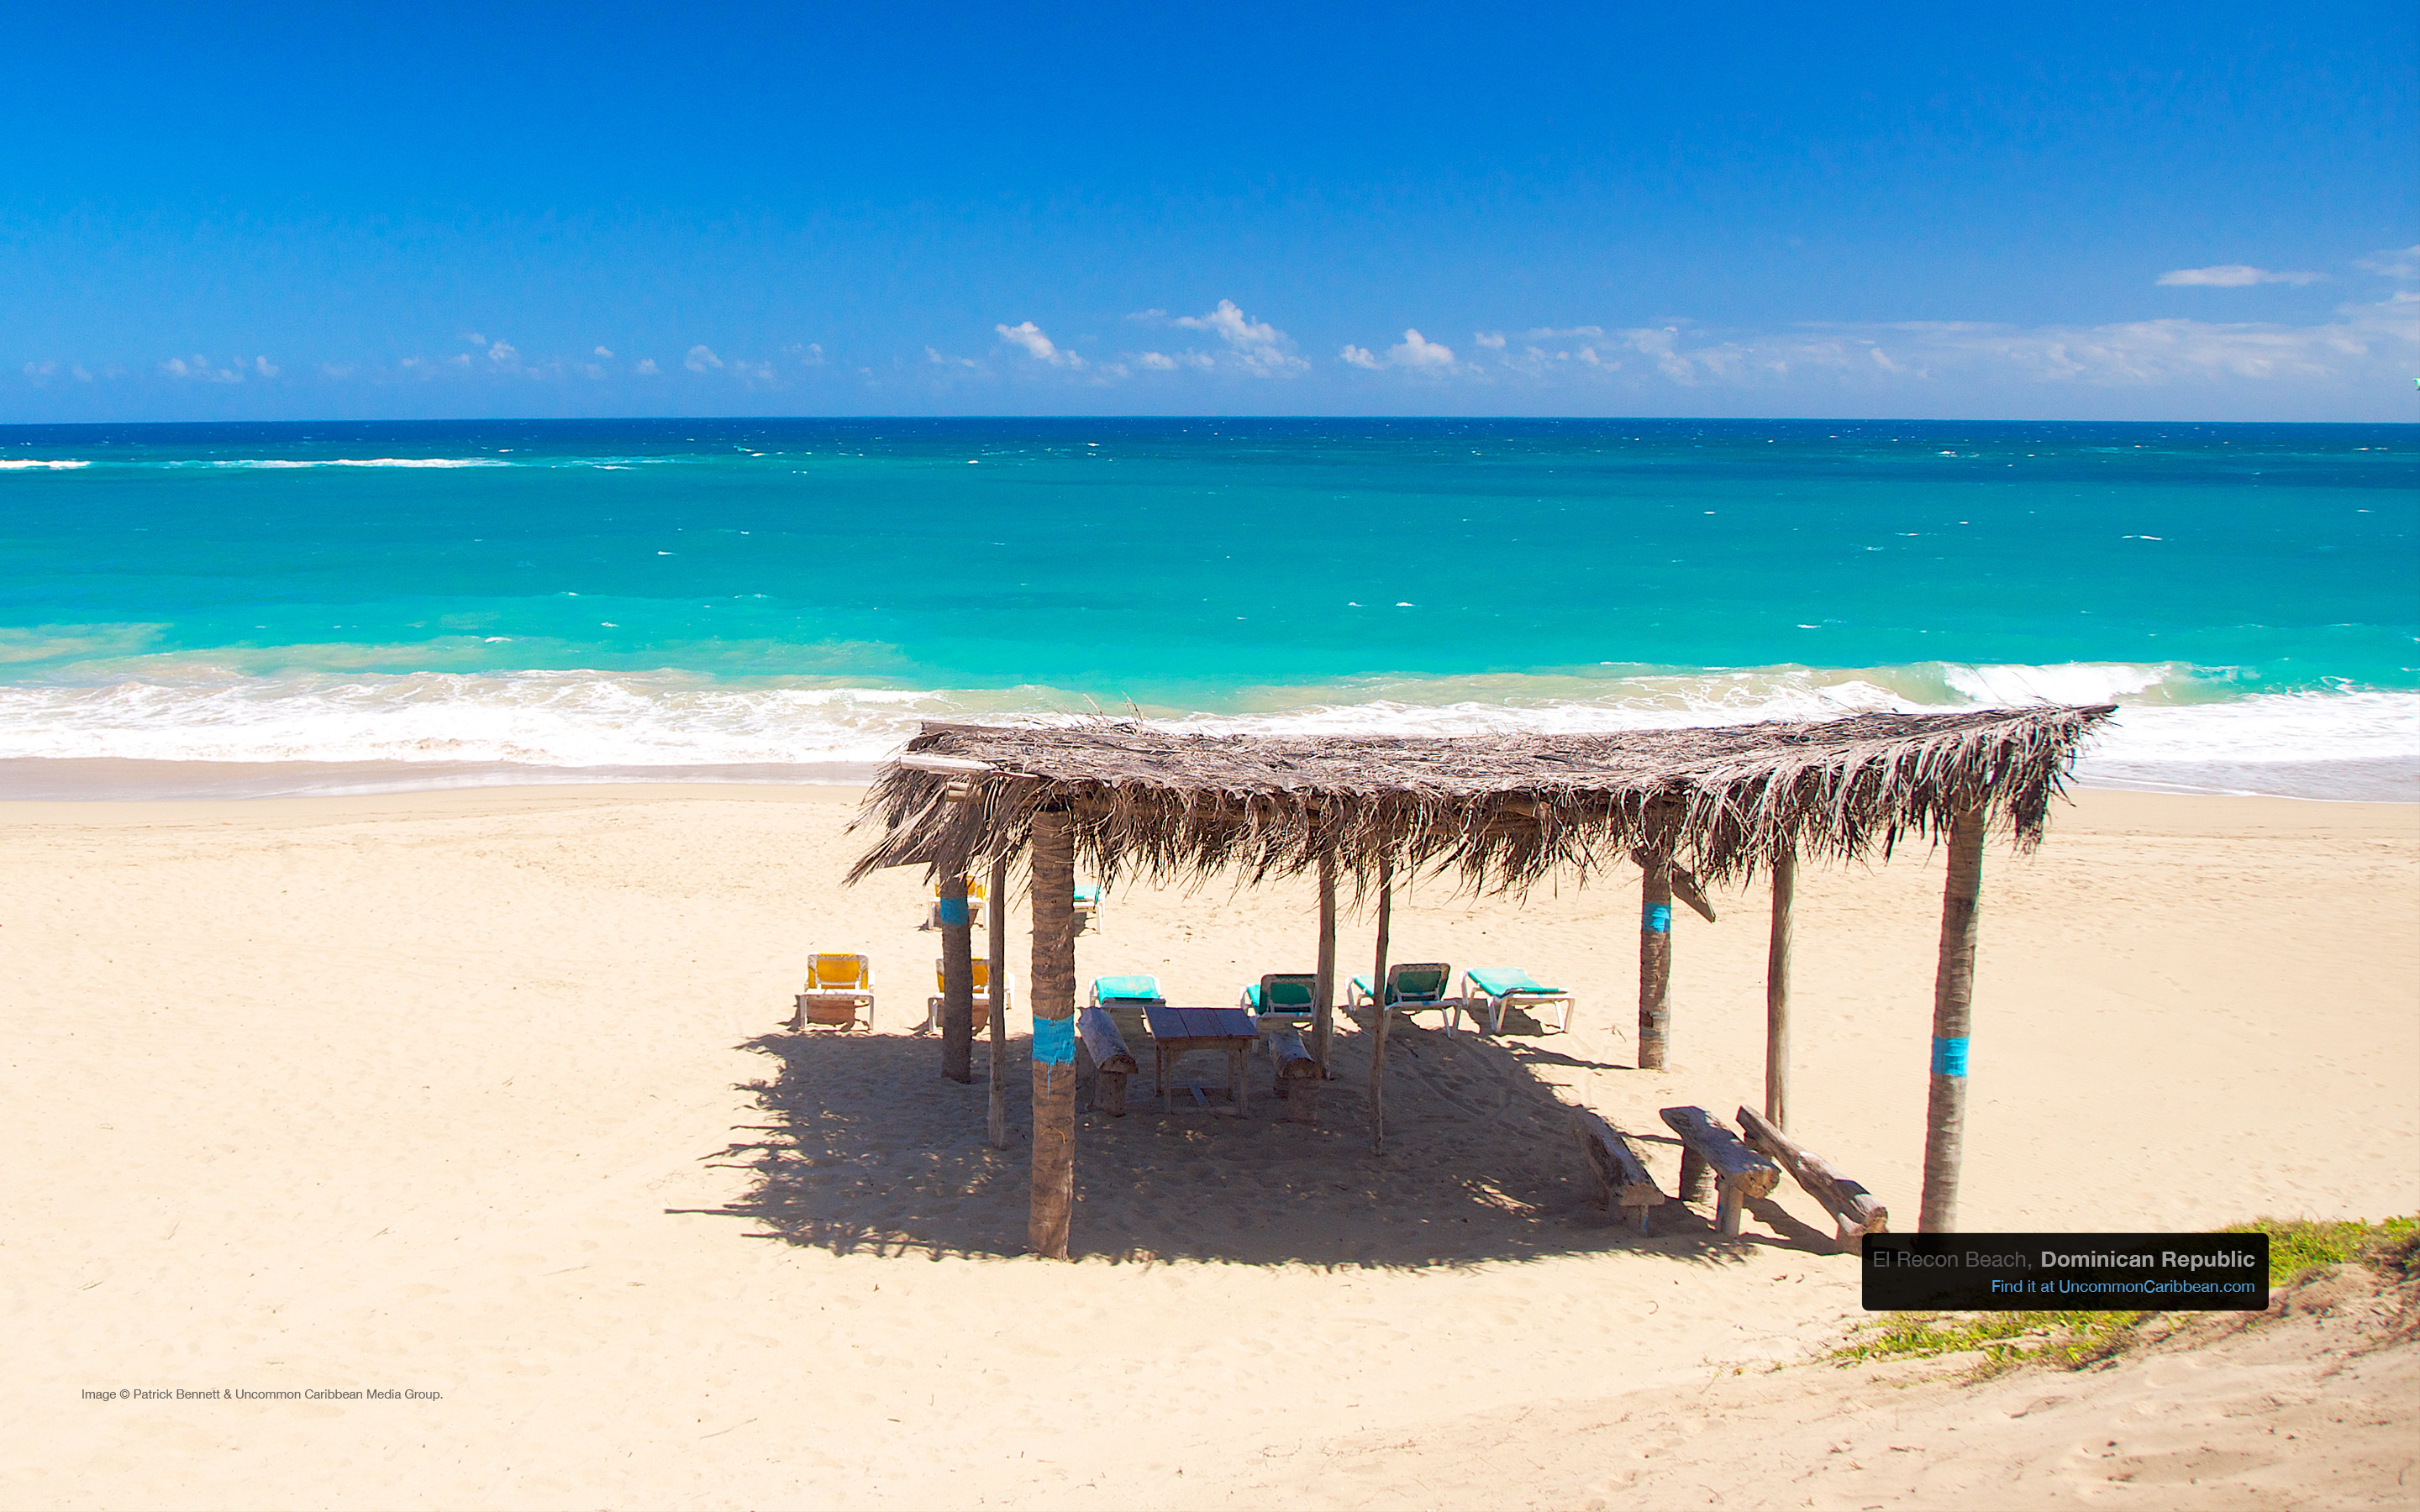 … Barbados El Recon Beach, Cabarete, Dominican Republic